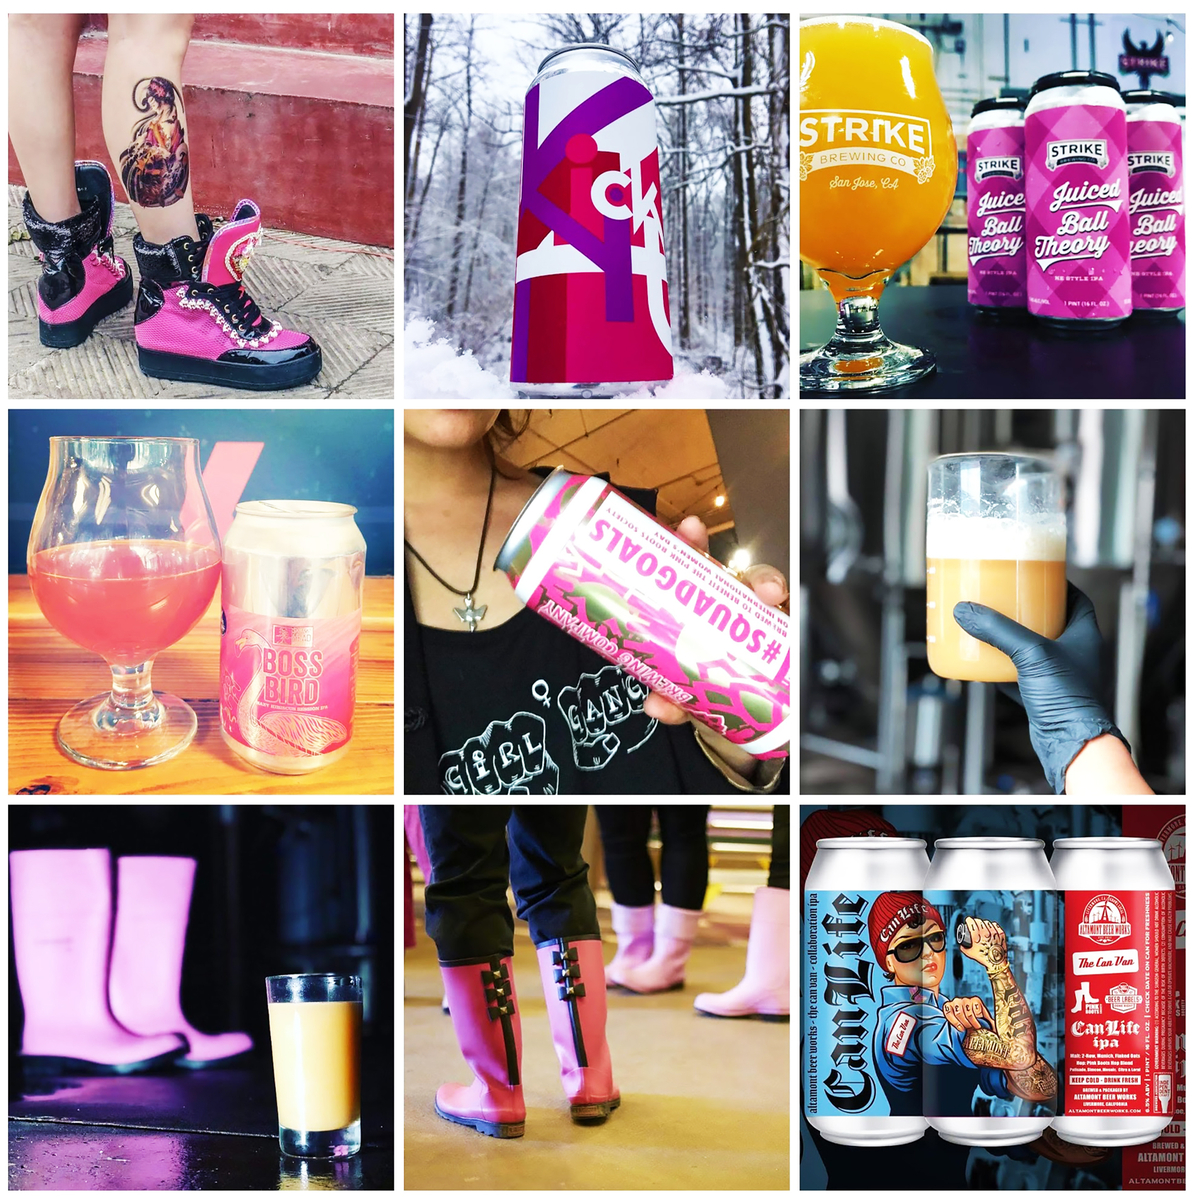 pink boots society collage